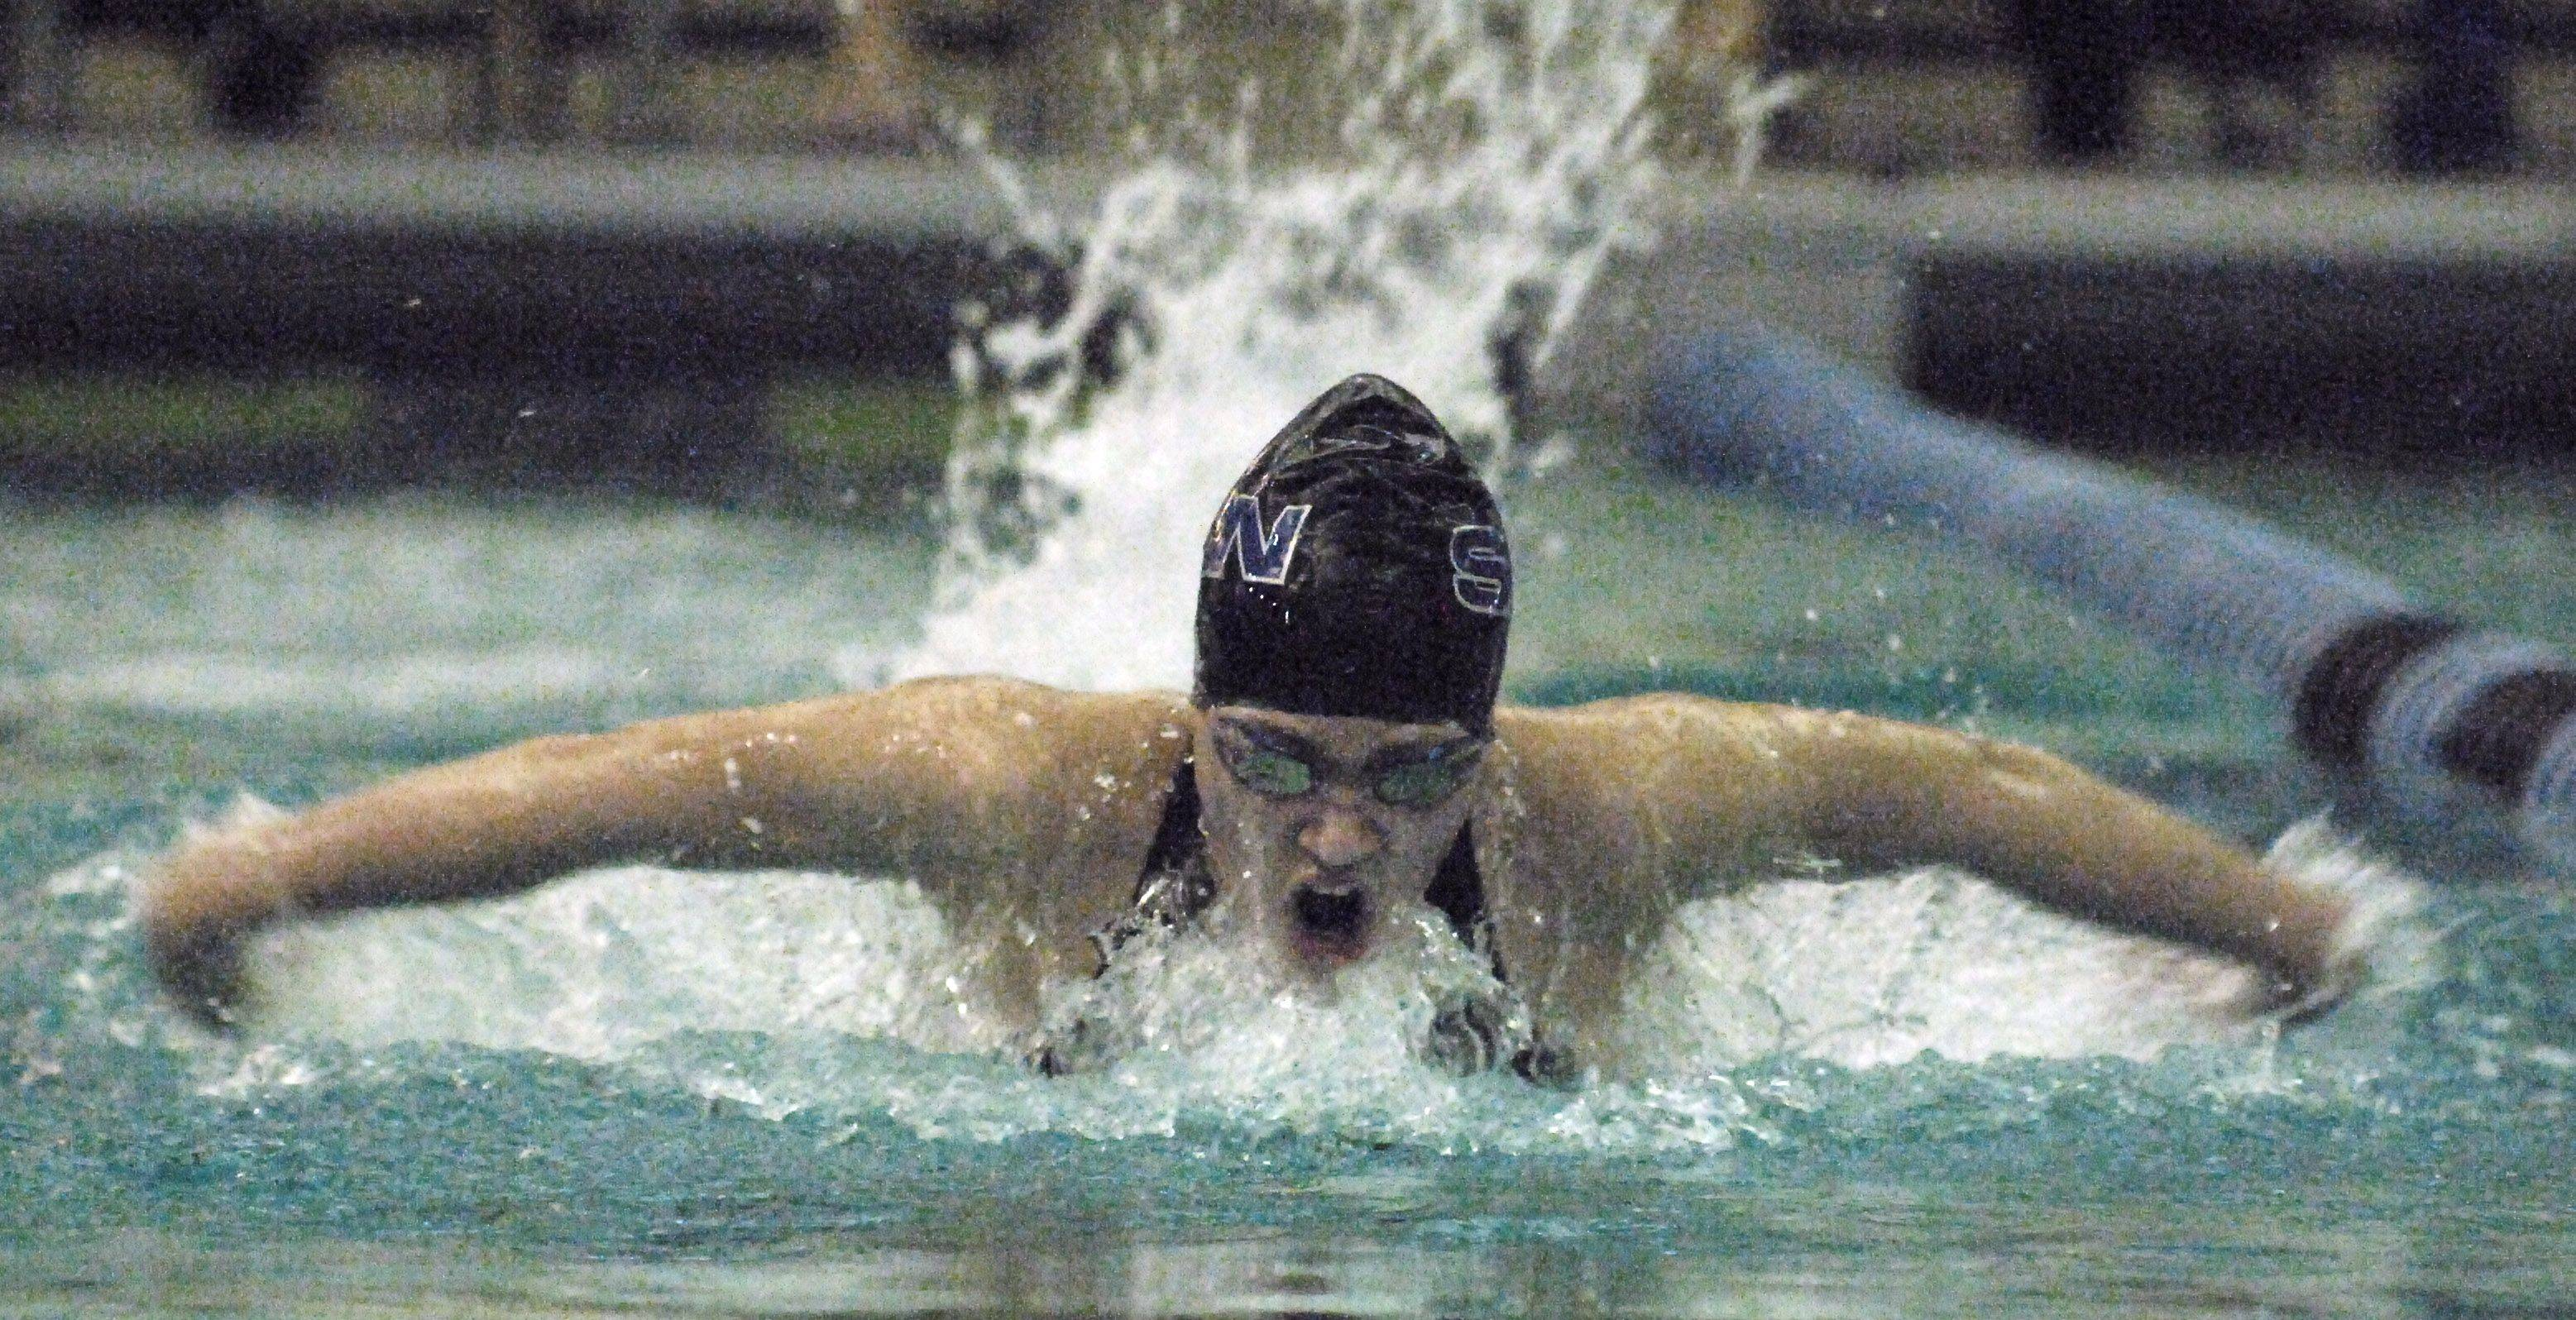 St. Charles North's Chole Tykal in the 200-yard individual medley at the St. Charles North swimming sectional on Saturday.